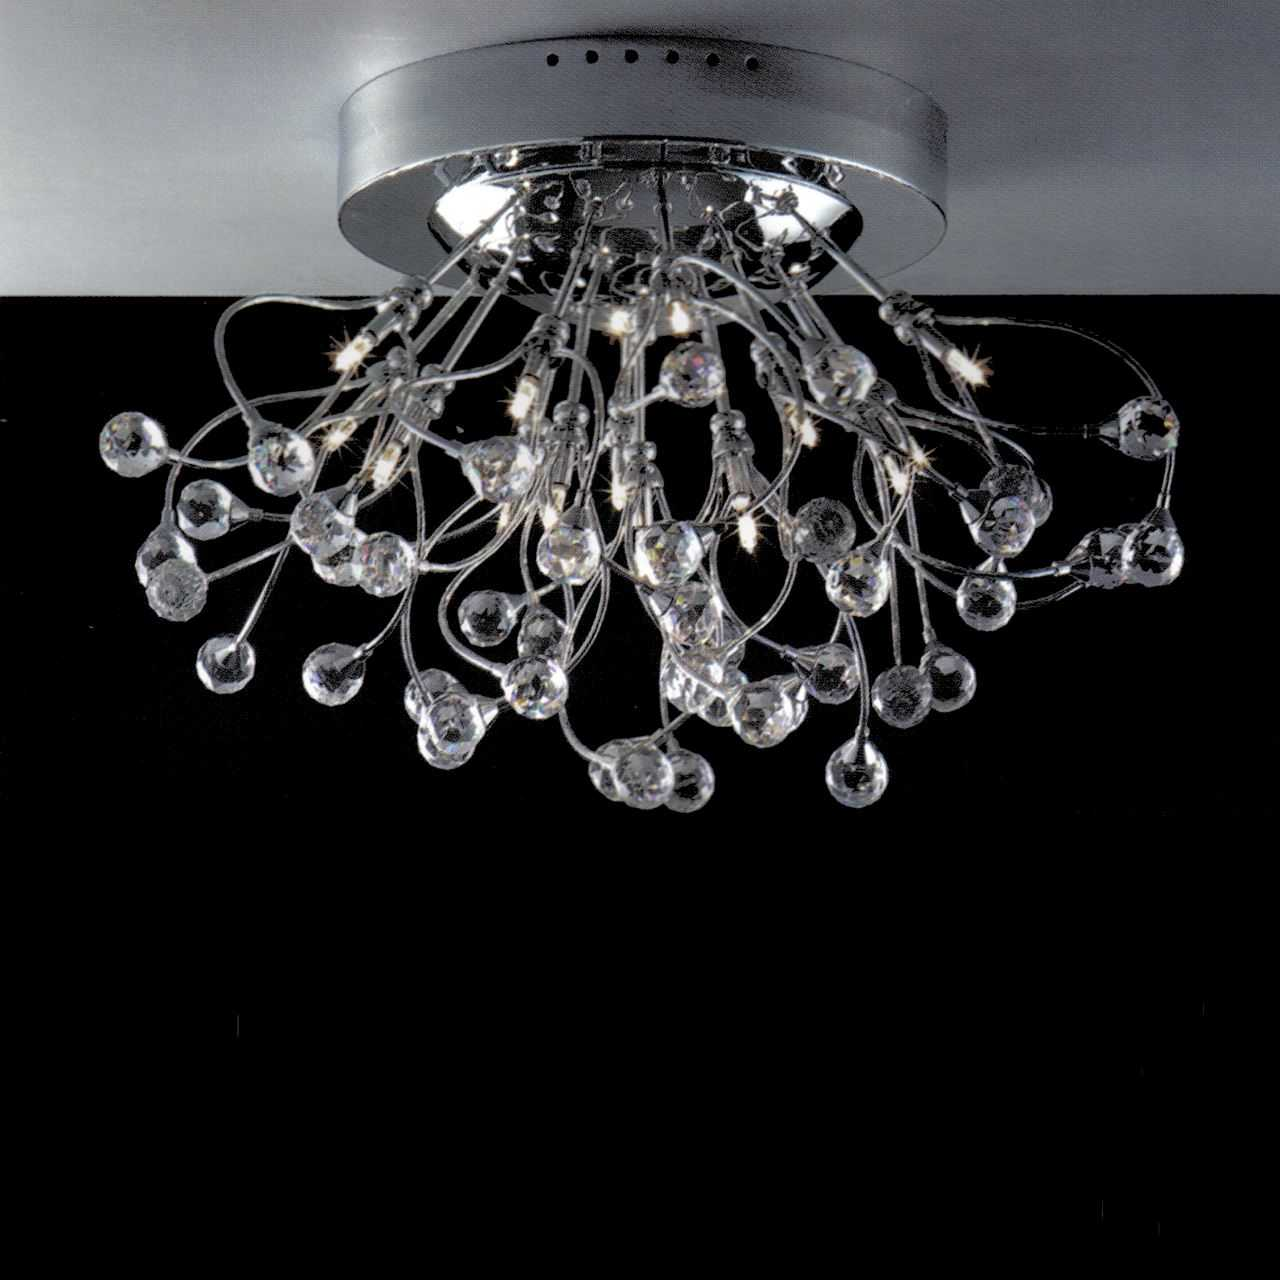 Brizzo lighting stores 24 sfera modern crystal flush mount round picture of 24 sfera modern crystal flush mount round chandelier polished chrome brushed nickel aloadofball Choice Image